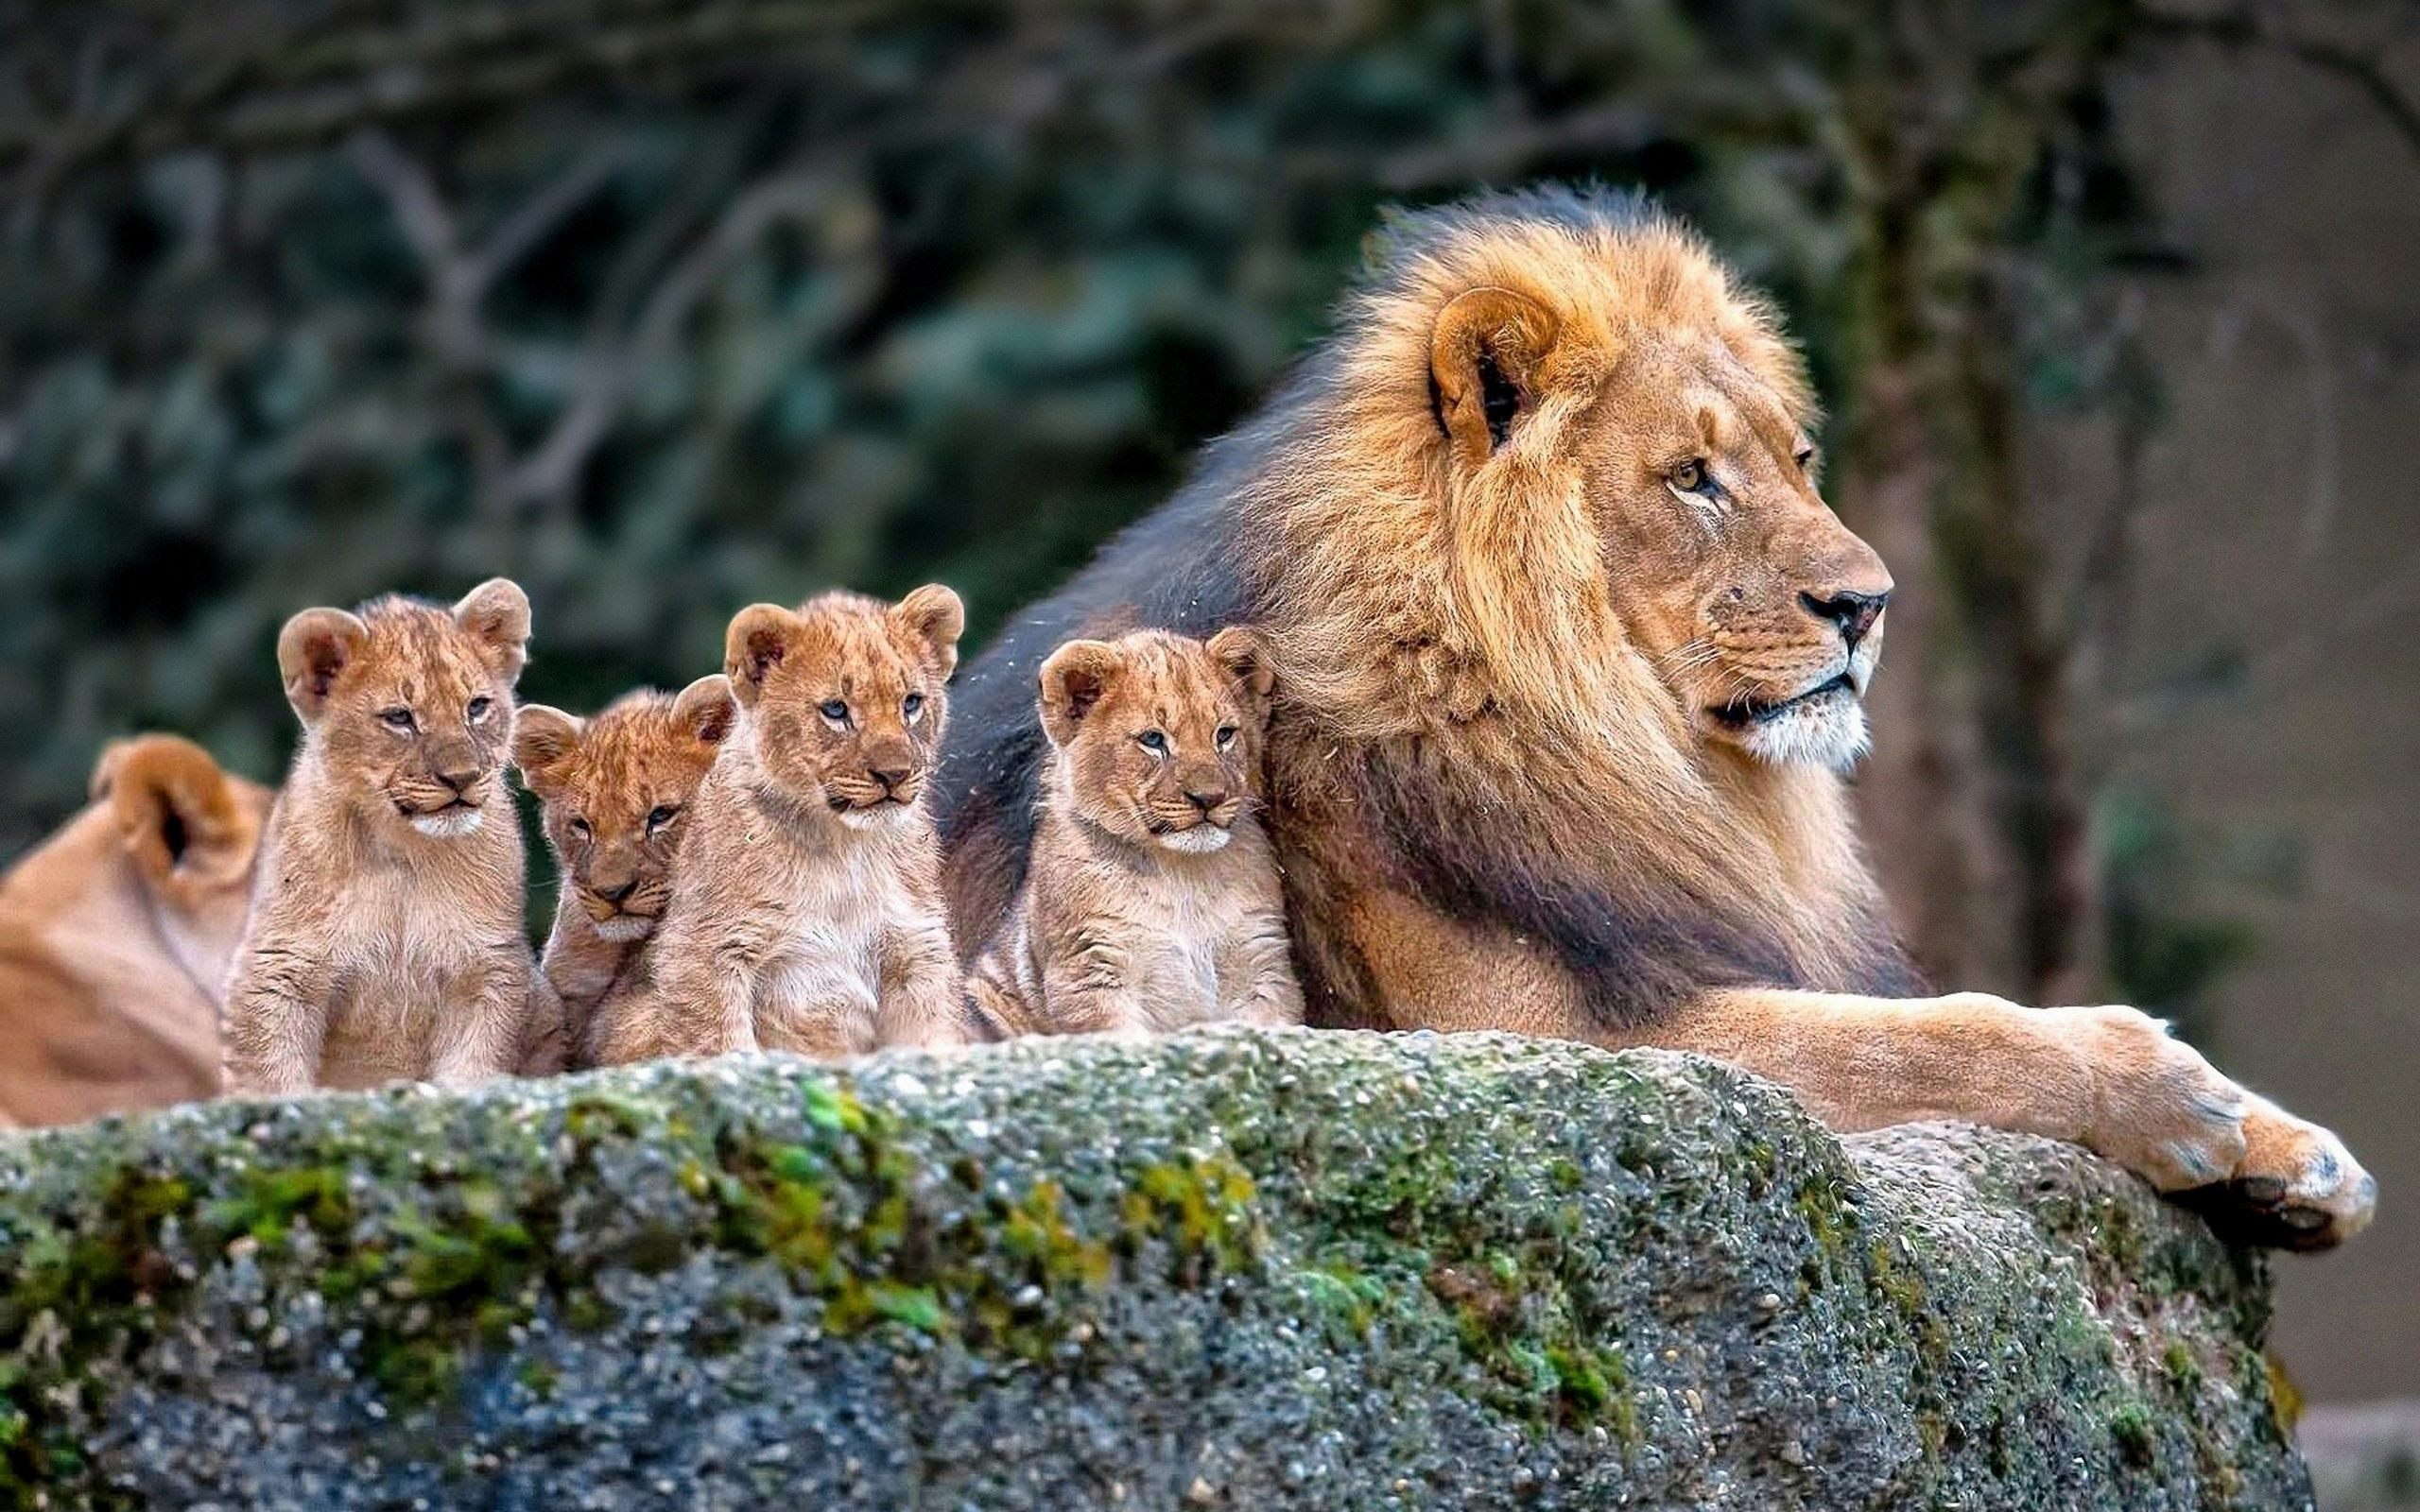 lion-family-baby-lions-hd-wallpaper : Lions